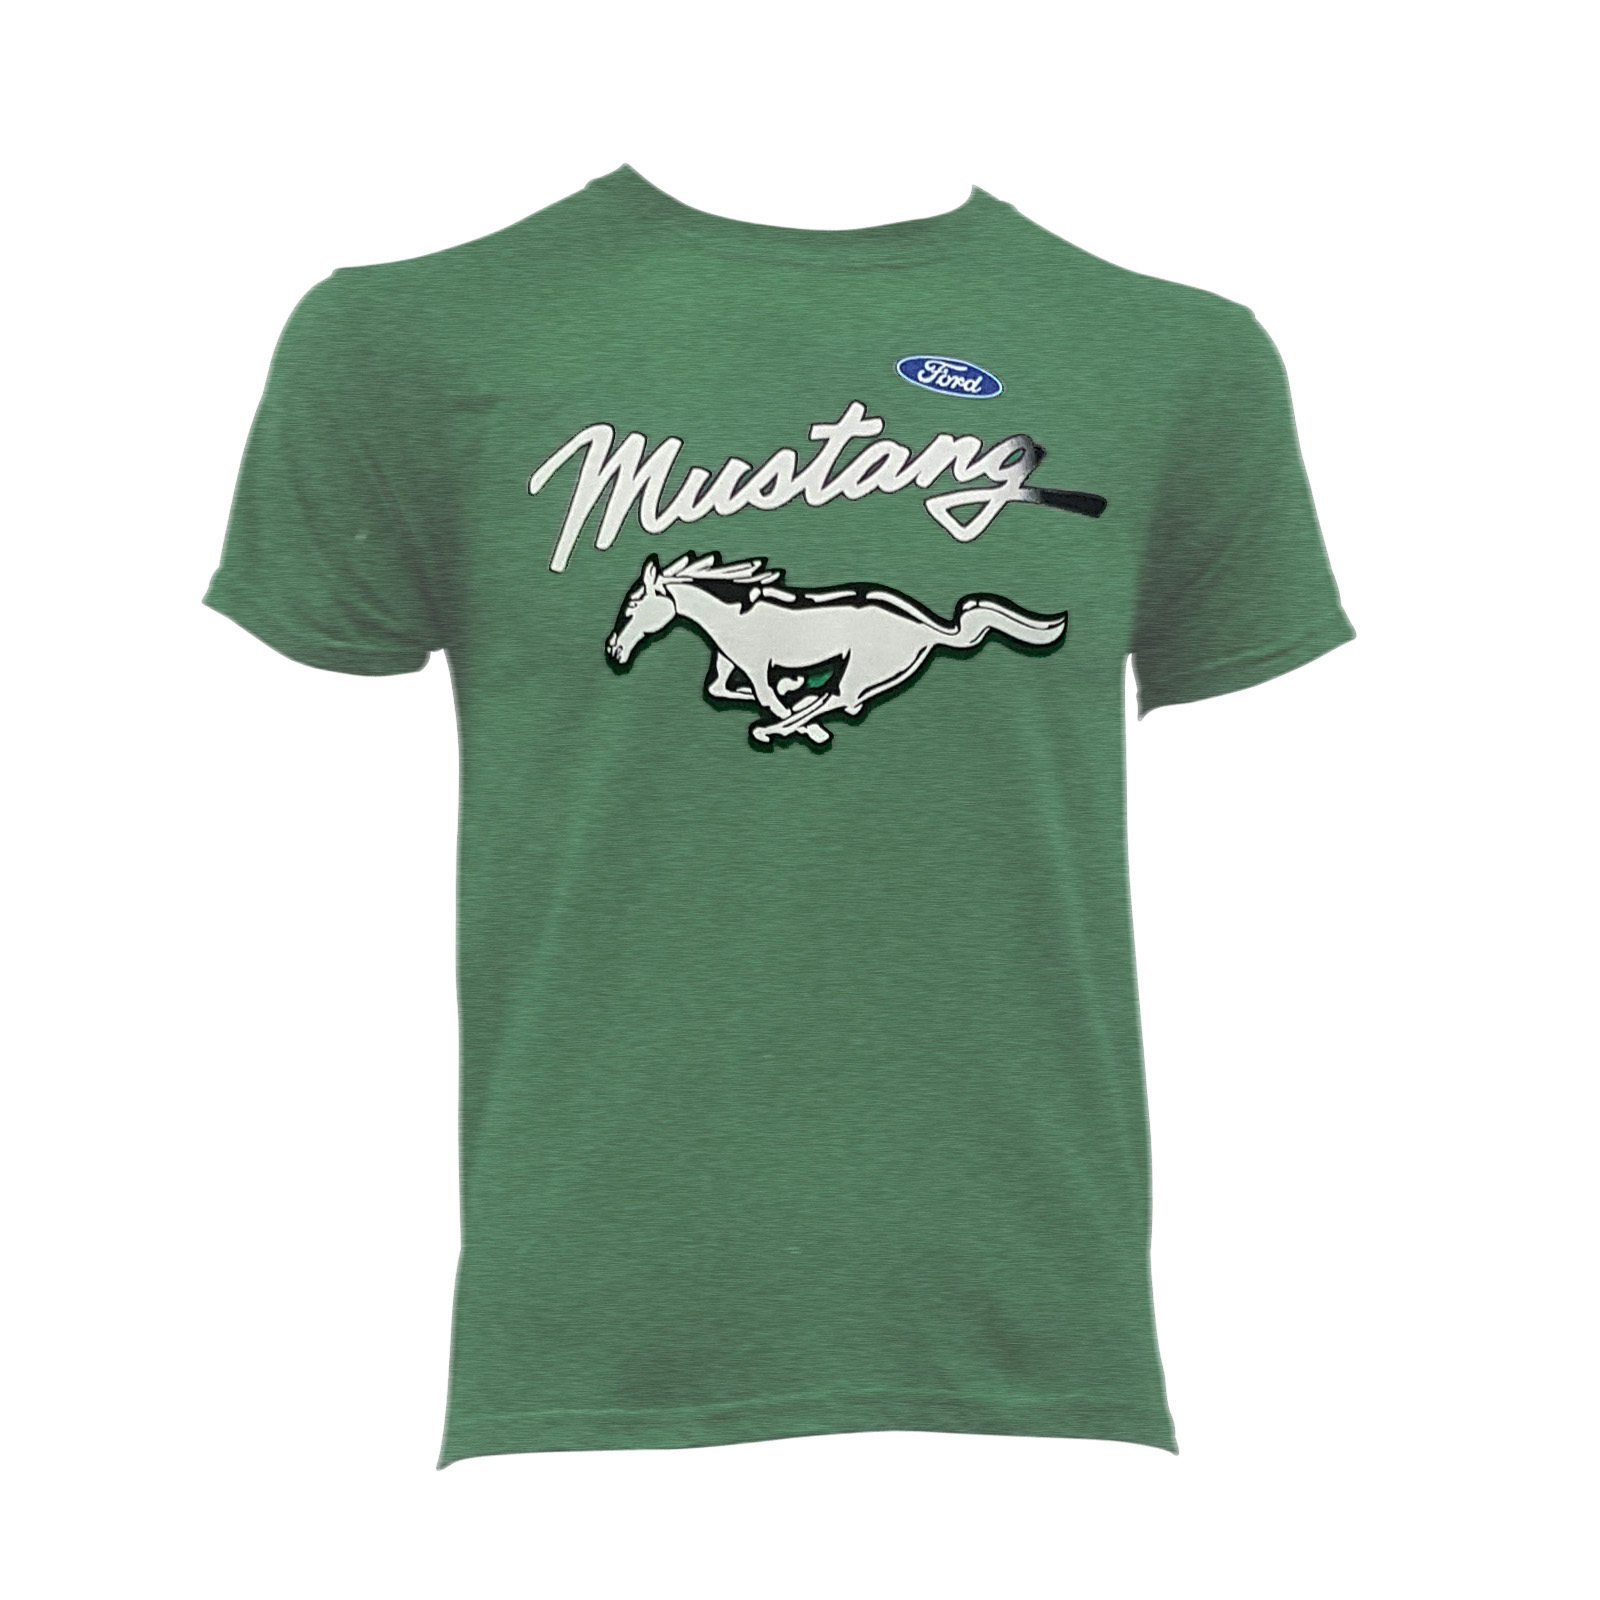 Ladies Size Ford Mustang Design T Shirt Tee Shirt Pony Tri: FORD MUSTANG RUNNING HORSE T-SHIRT MILITARY GREEN